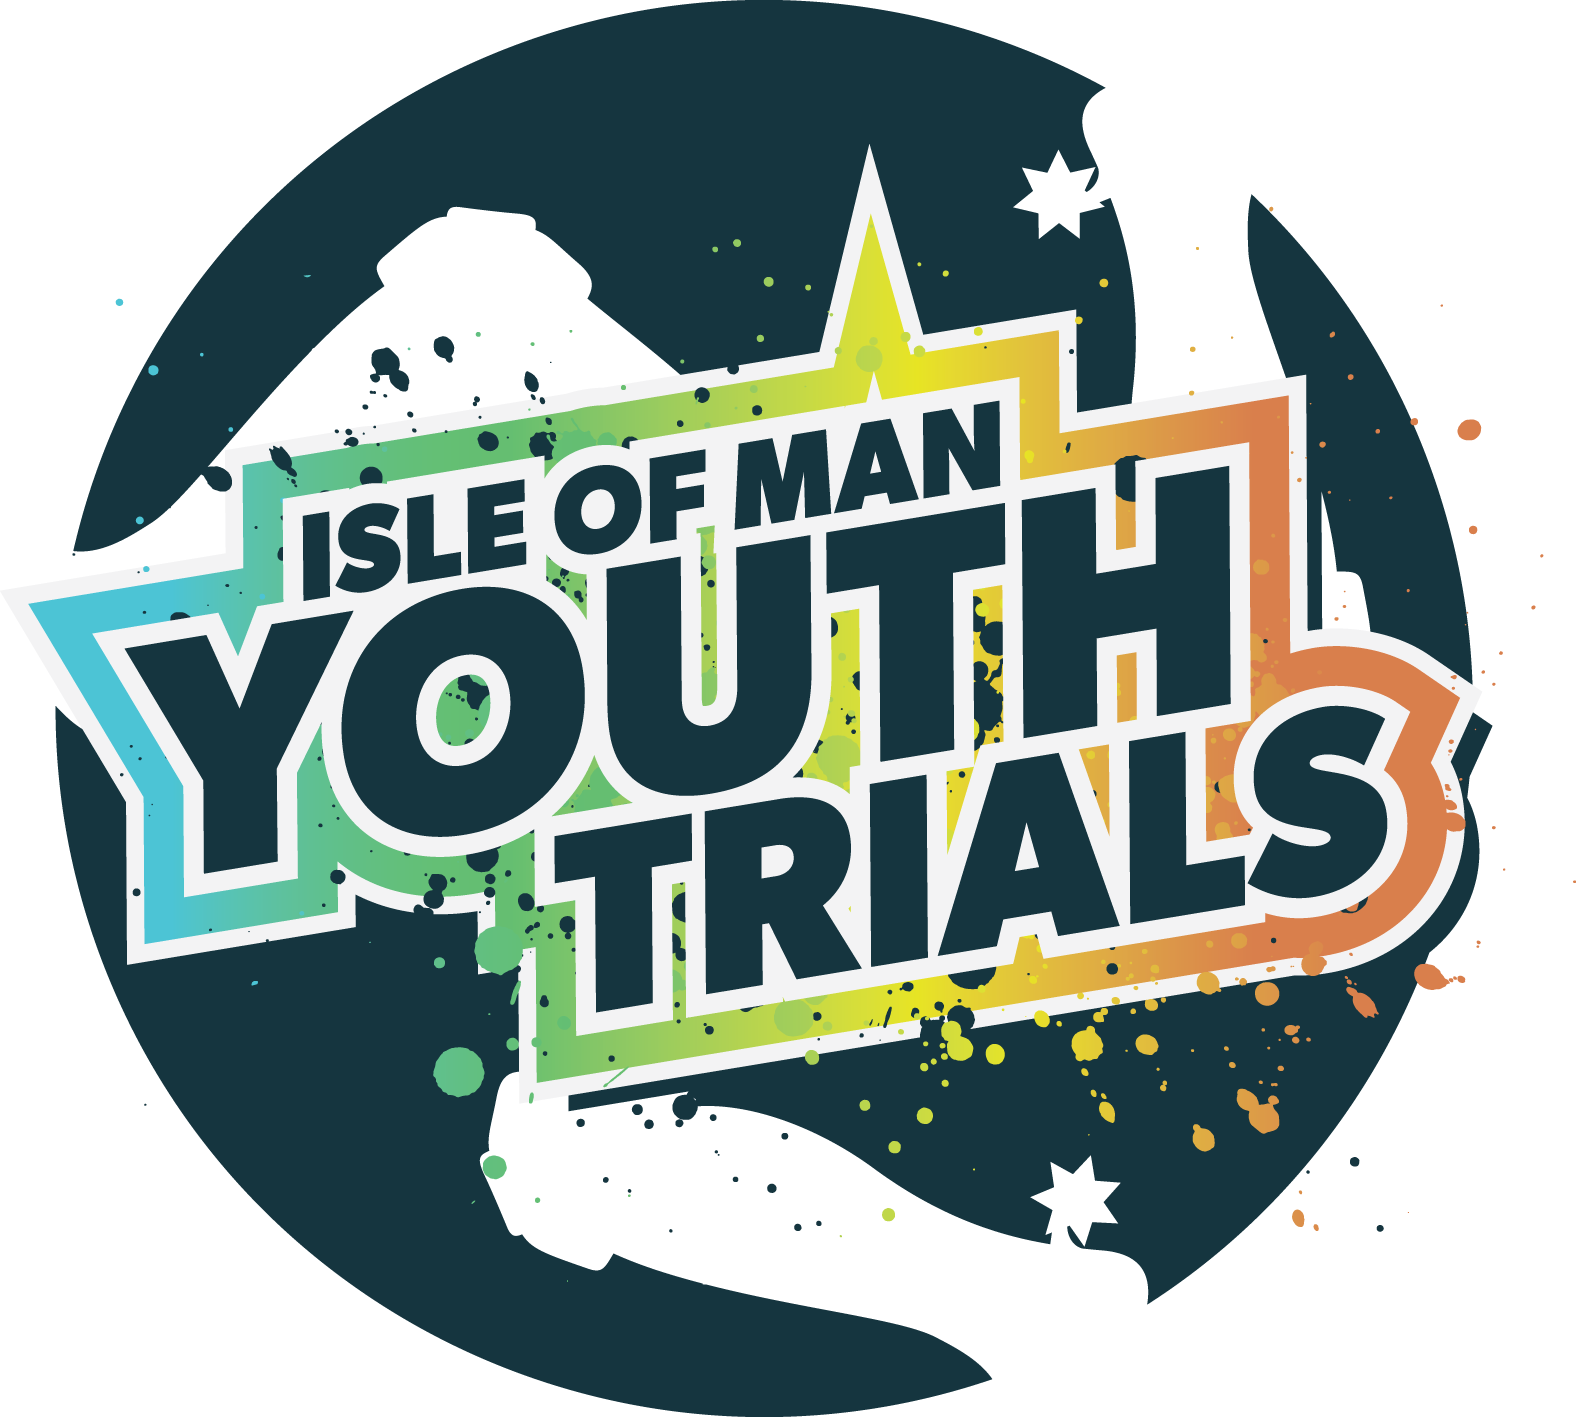 Youth Trials Club, Isle of Man